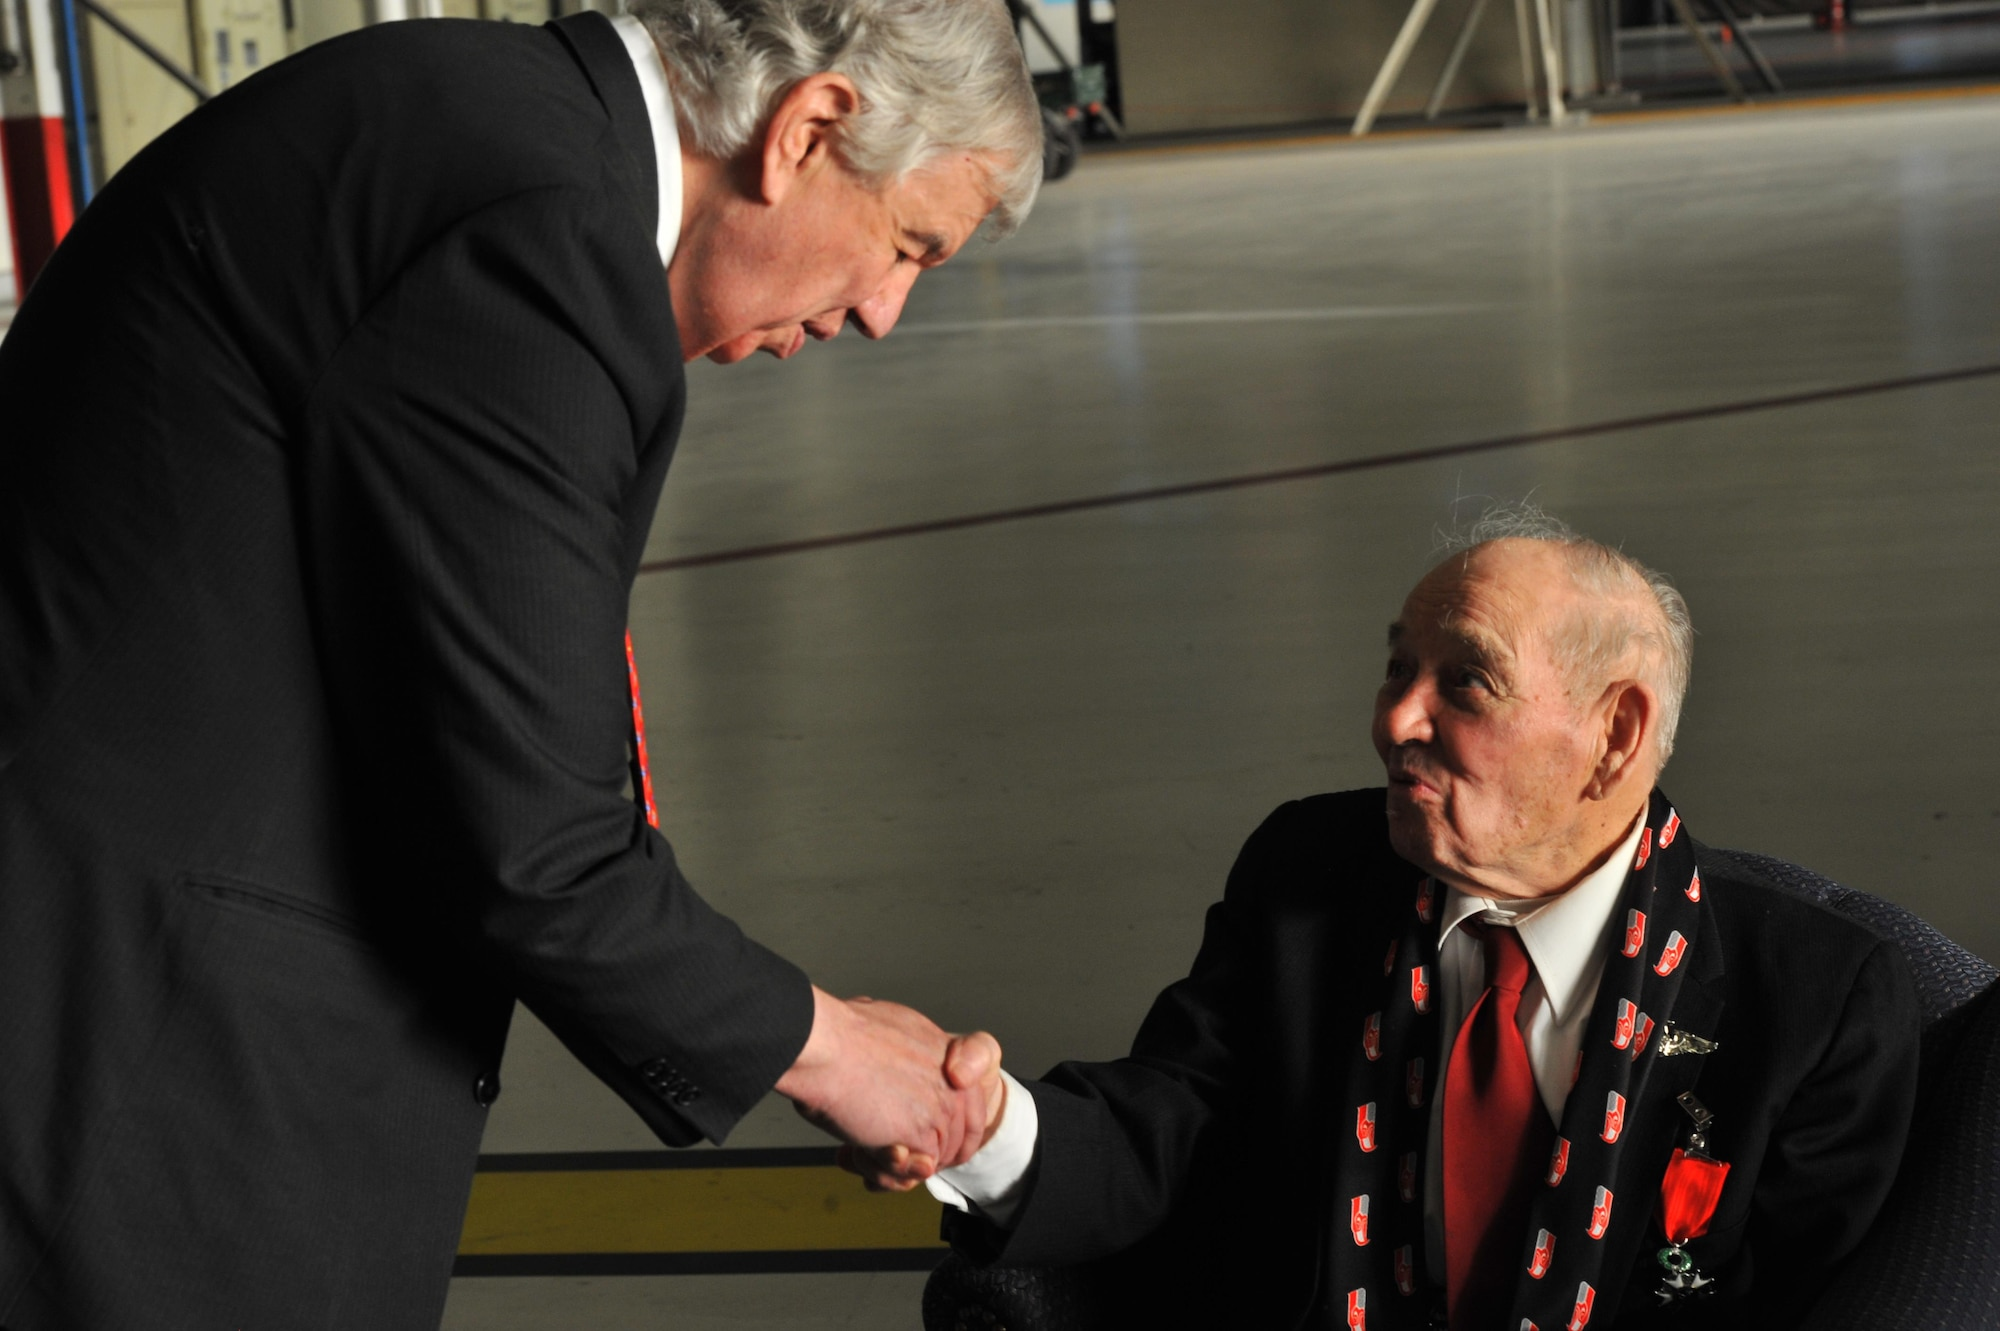 Jack Cowan of Honorary Consul of France shakes hands with retired Maj. Clarence Grimes Oct. 25, 2013, at Fairchild Air Force Base, Wash. The 92-year old was honored with the highest recognition by the French government for his contributions almost 70 years ago to defend and preserve the independence of France.